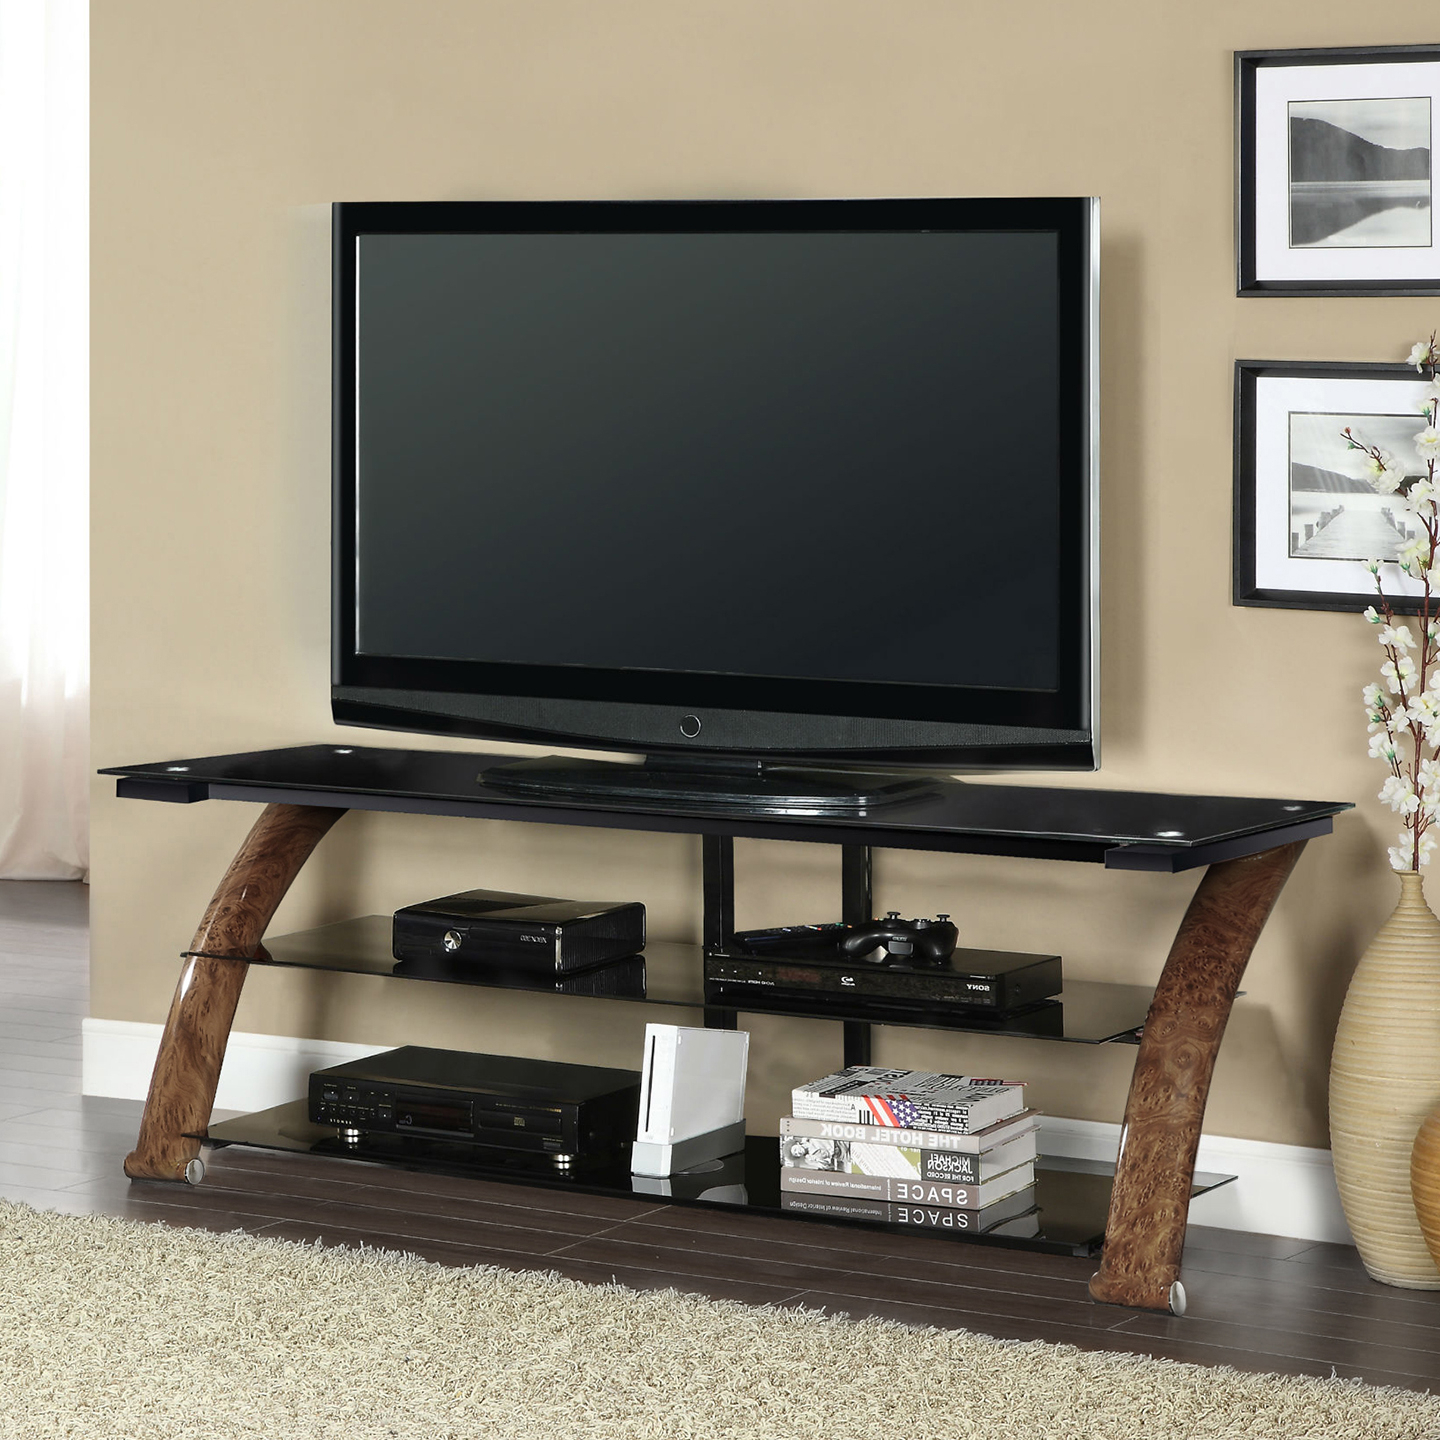 """2019 Bloomfield Tv Stands For Tvs Up To 65"""" With Regard To Memphis 65 Tv Stand Burl Wood – Living Essentials Corp (View 3 of 20)"""